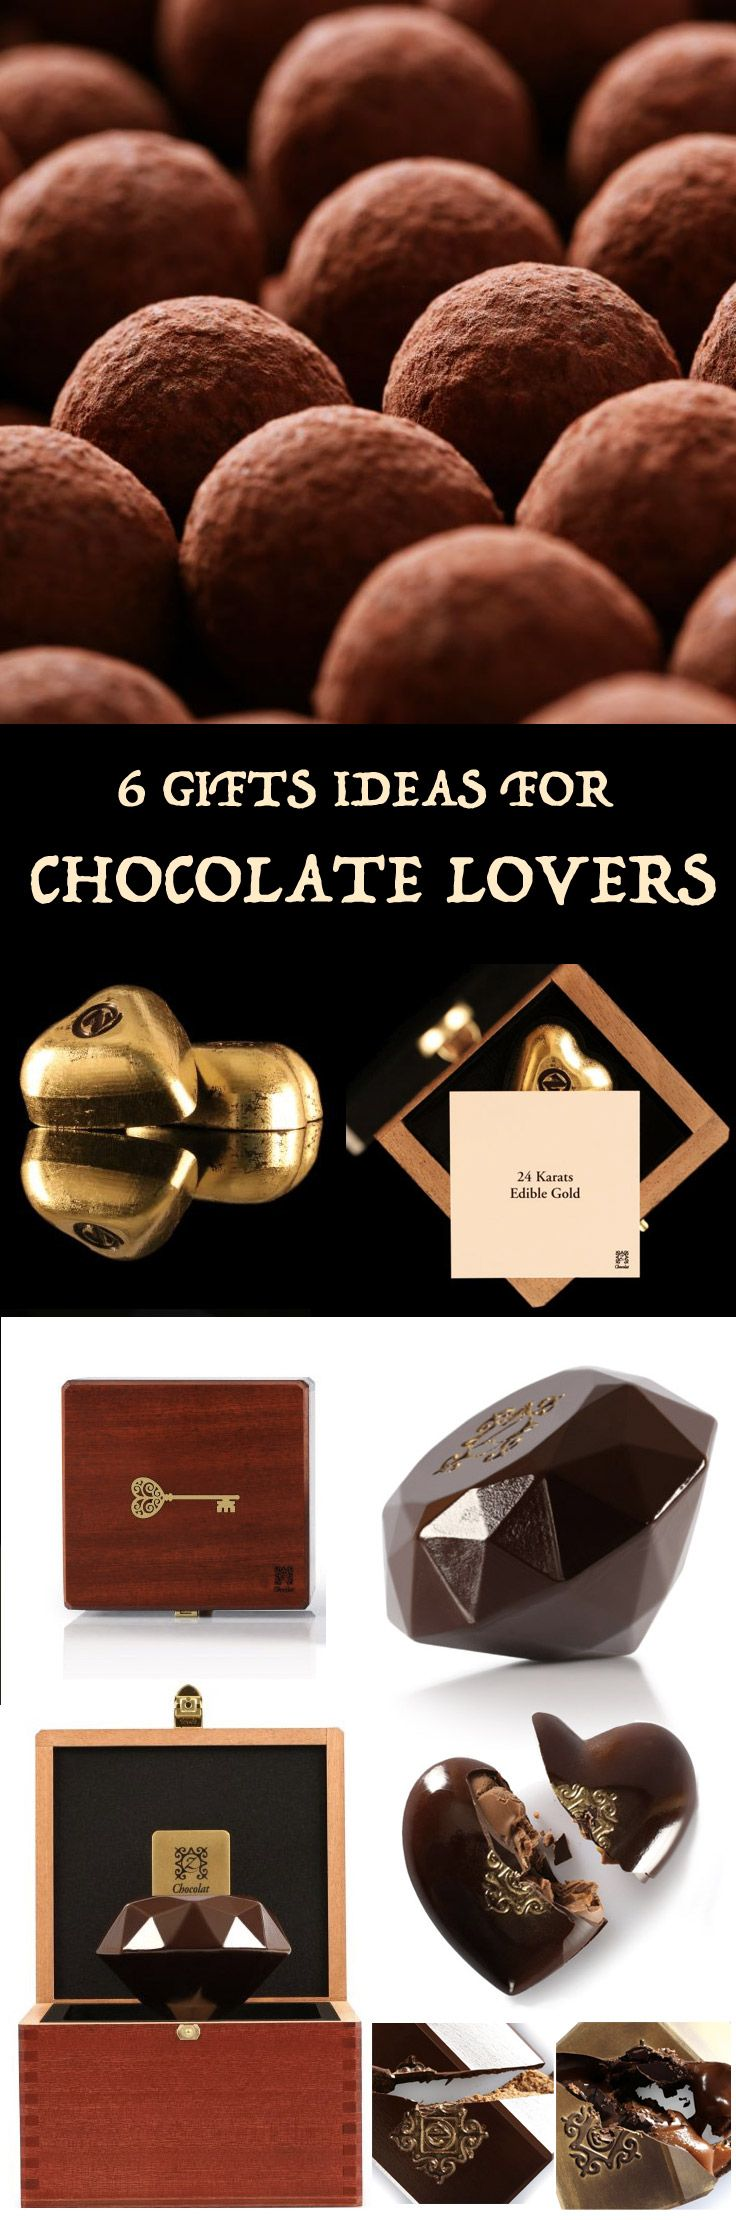 TOP 6 GIFTS IDEAS FOR CHOCOLATE LOVERS